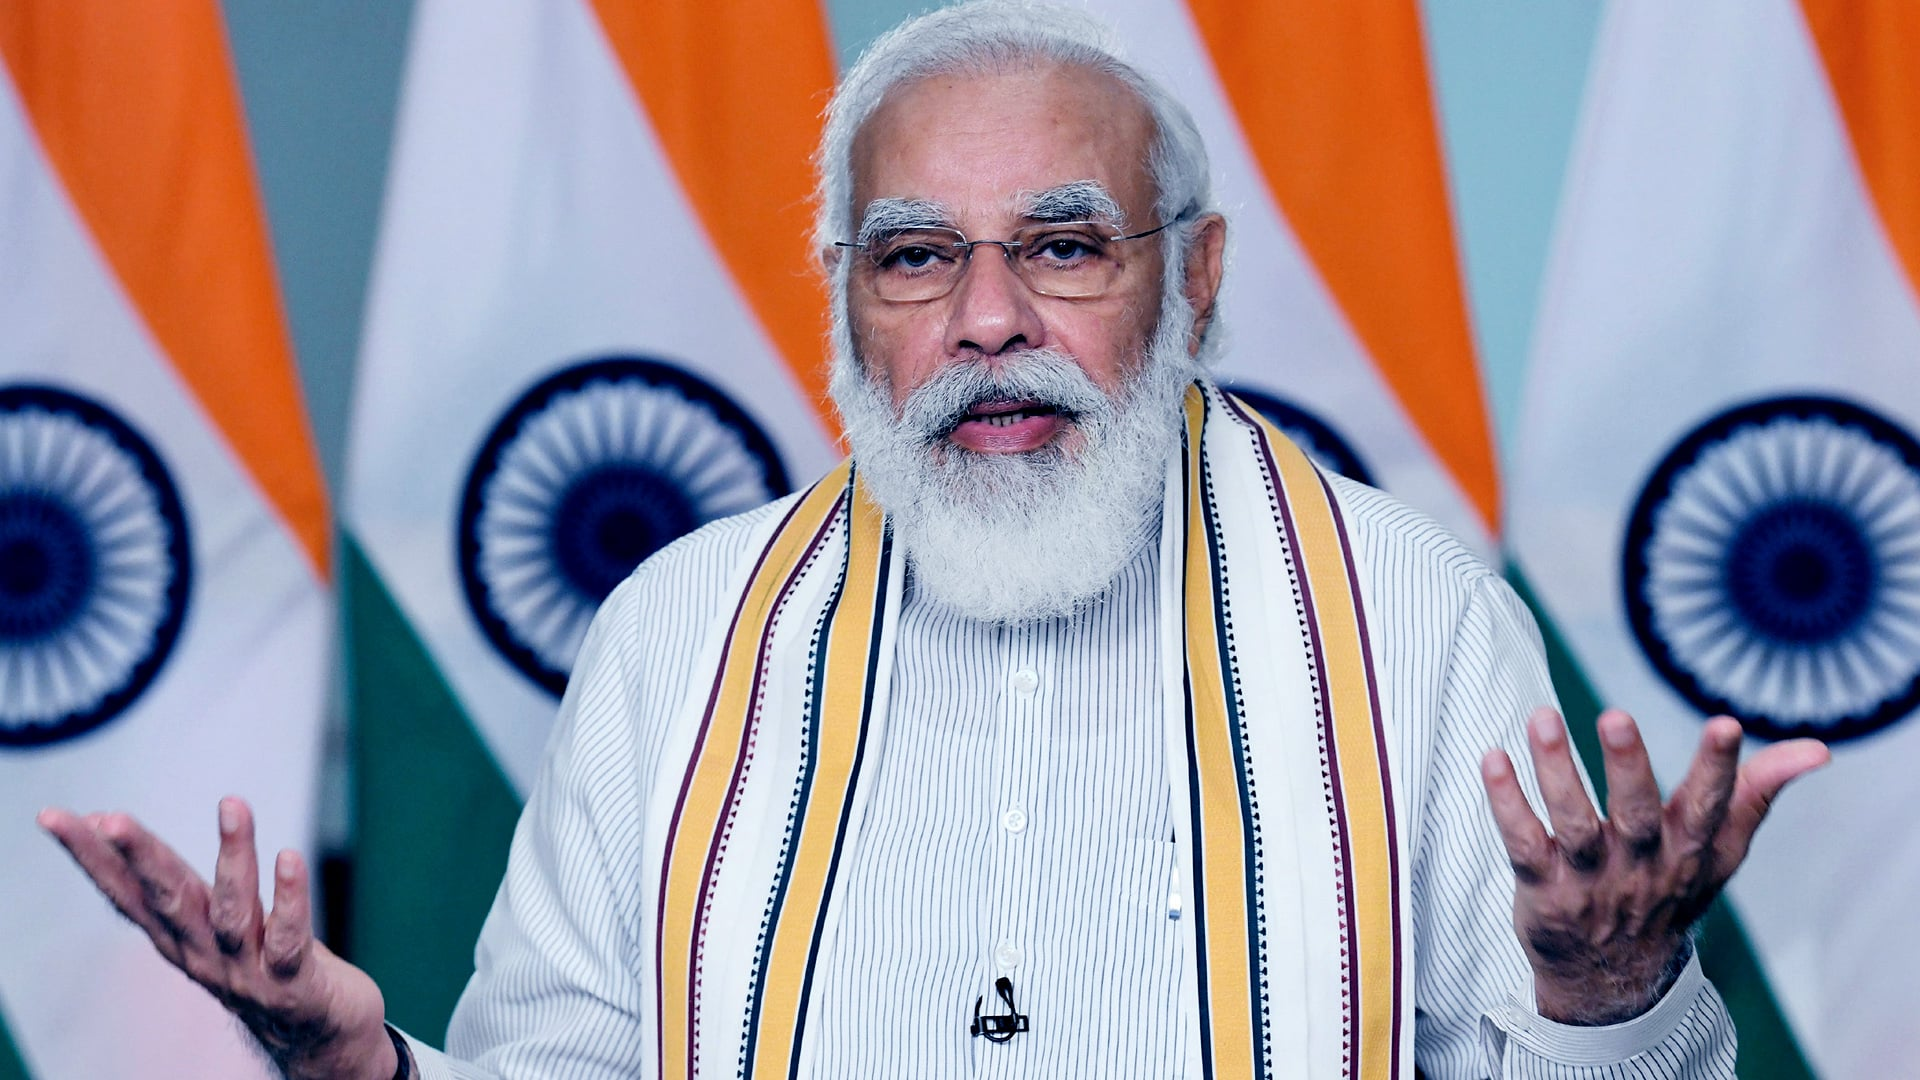 Rs 20,000 crore released under PM-KISAN scheme, to benefit 9.5 crore farmers